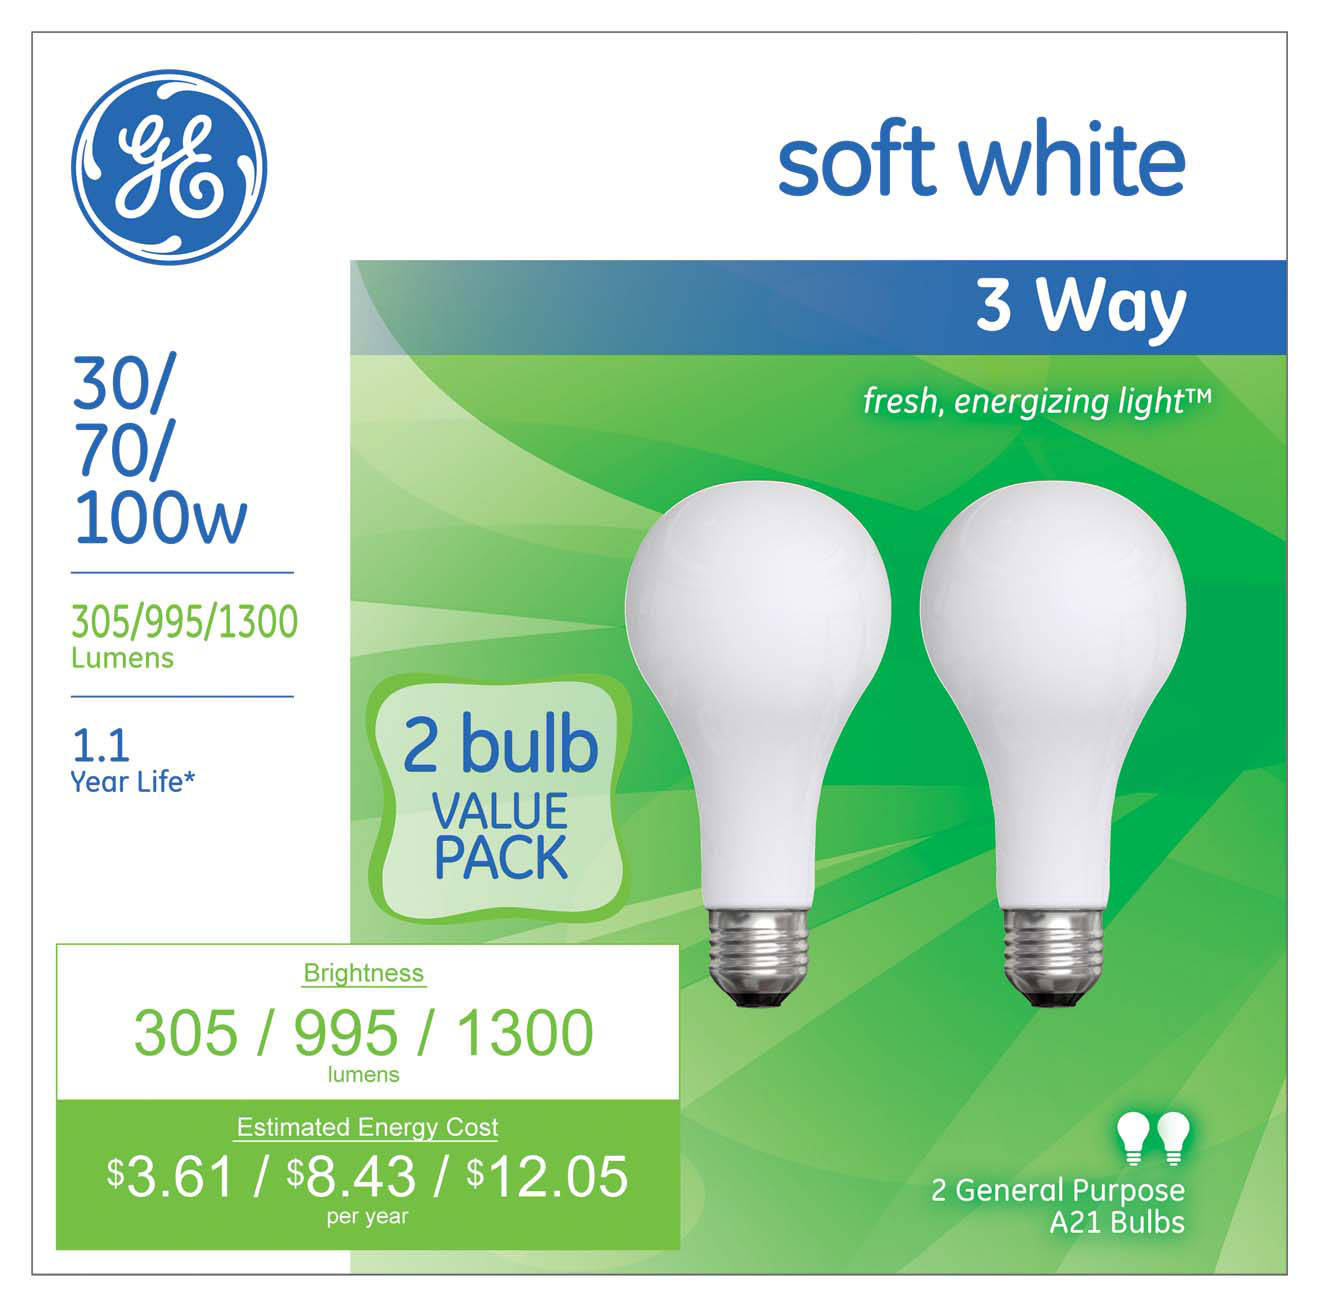 Ge soft white 3 way 30 70 100 watt incandescent a21 2 pack 3 way light bulbs